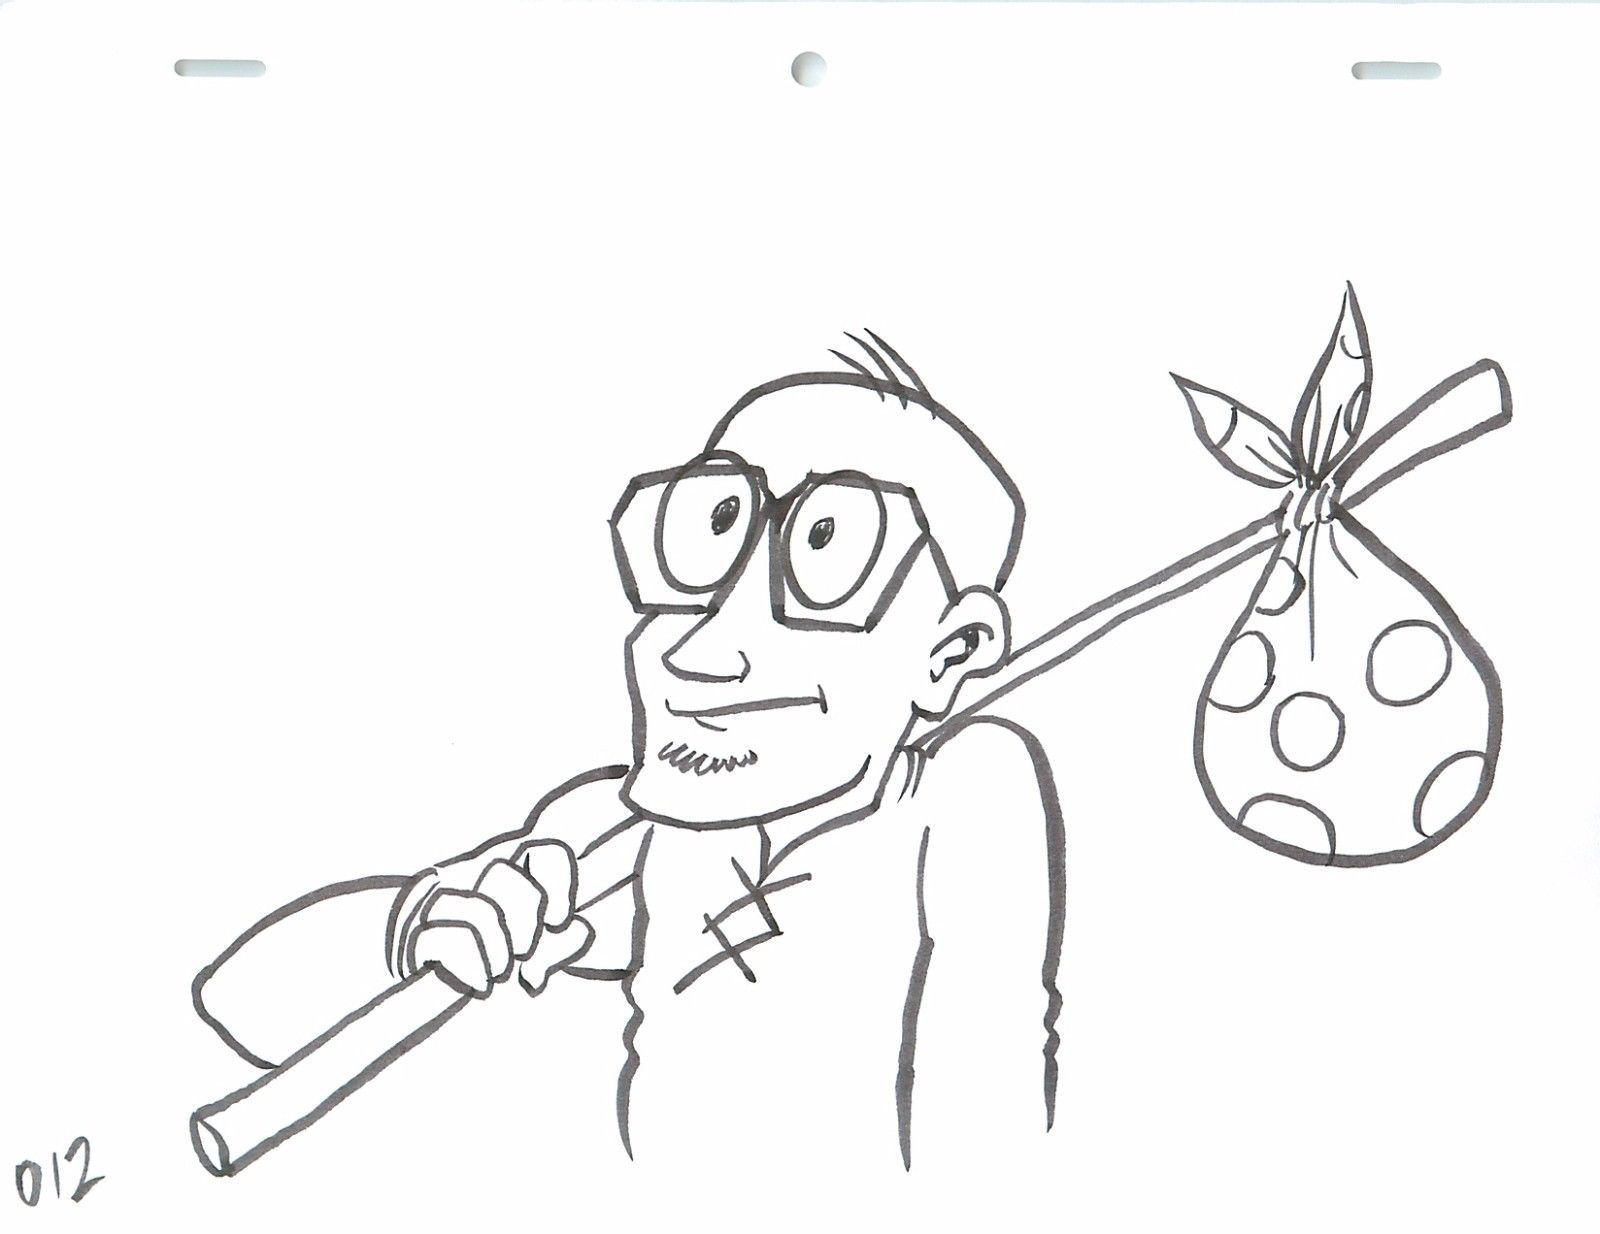 I'll Form the Head, New Animated Music Video by MC Frontalot